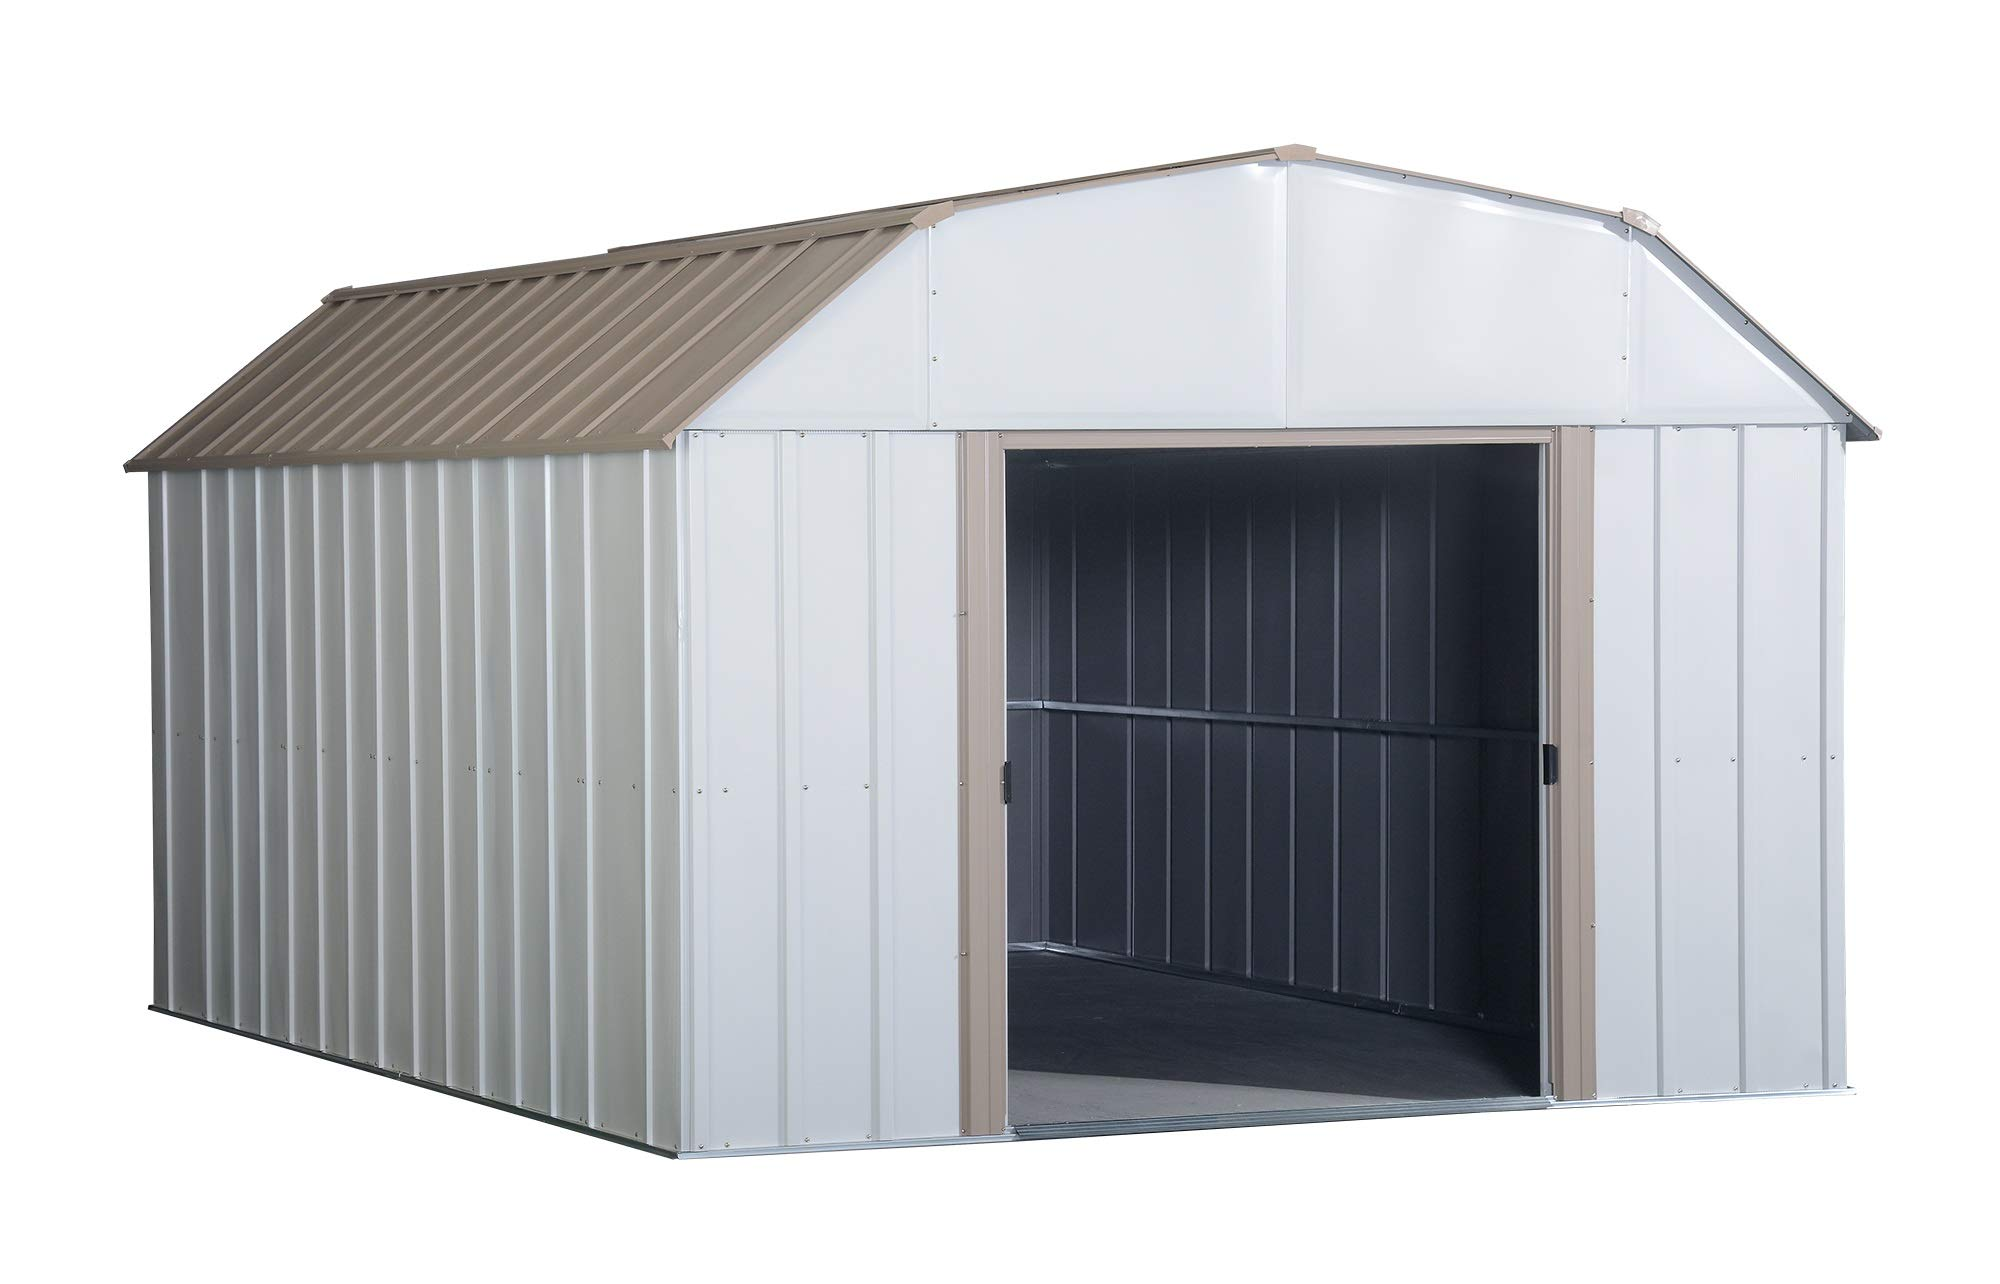 Arrow LX1014 10 x 14 ft. Barn Style Galvanized Taupe/Eggshell Steel Storage Shed by Arrow